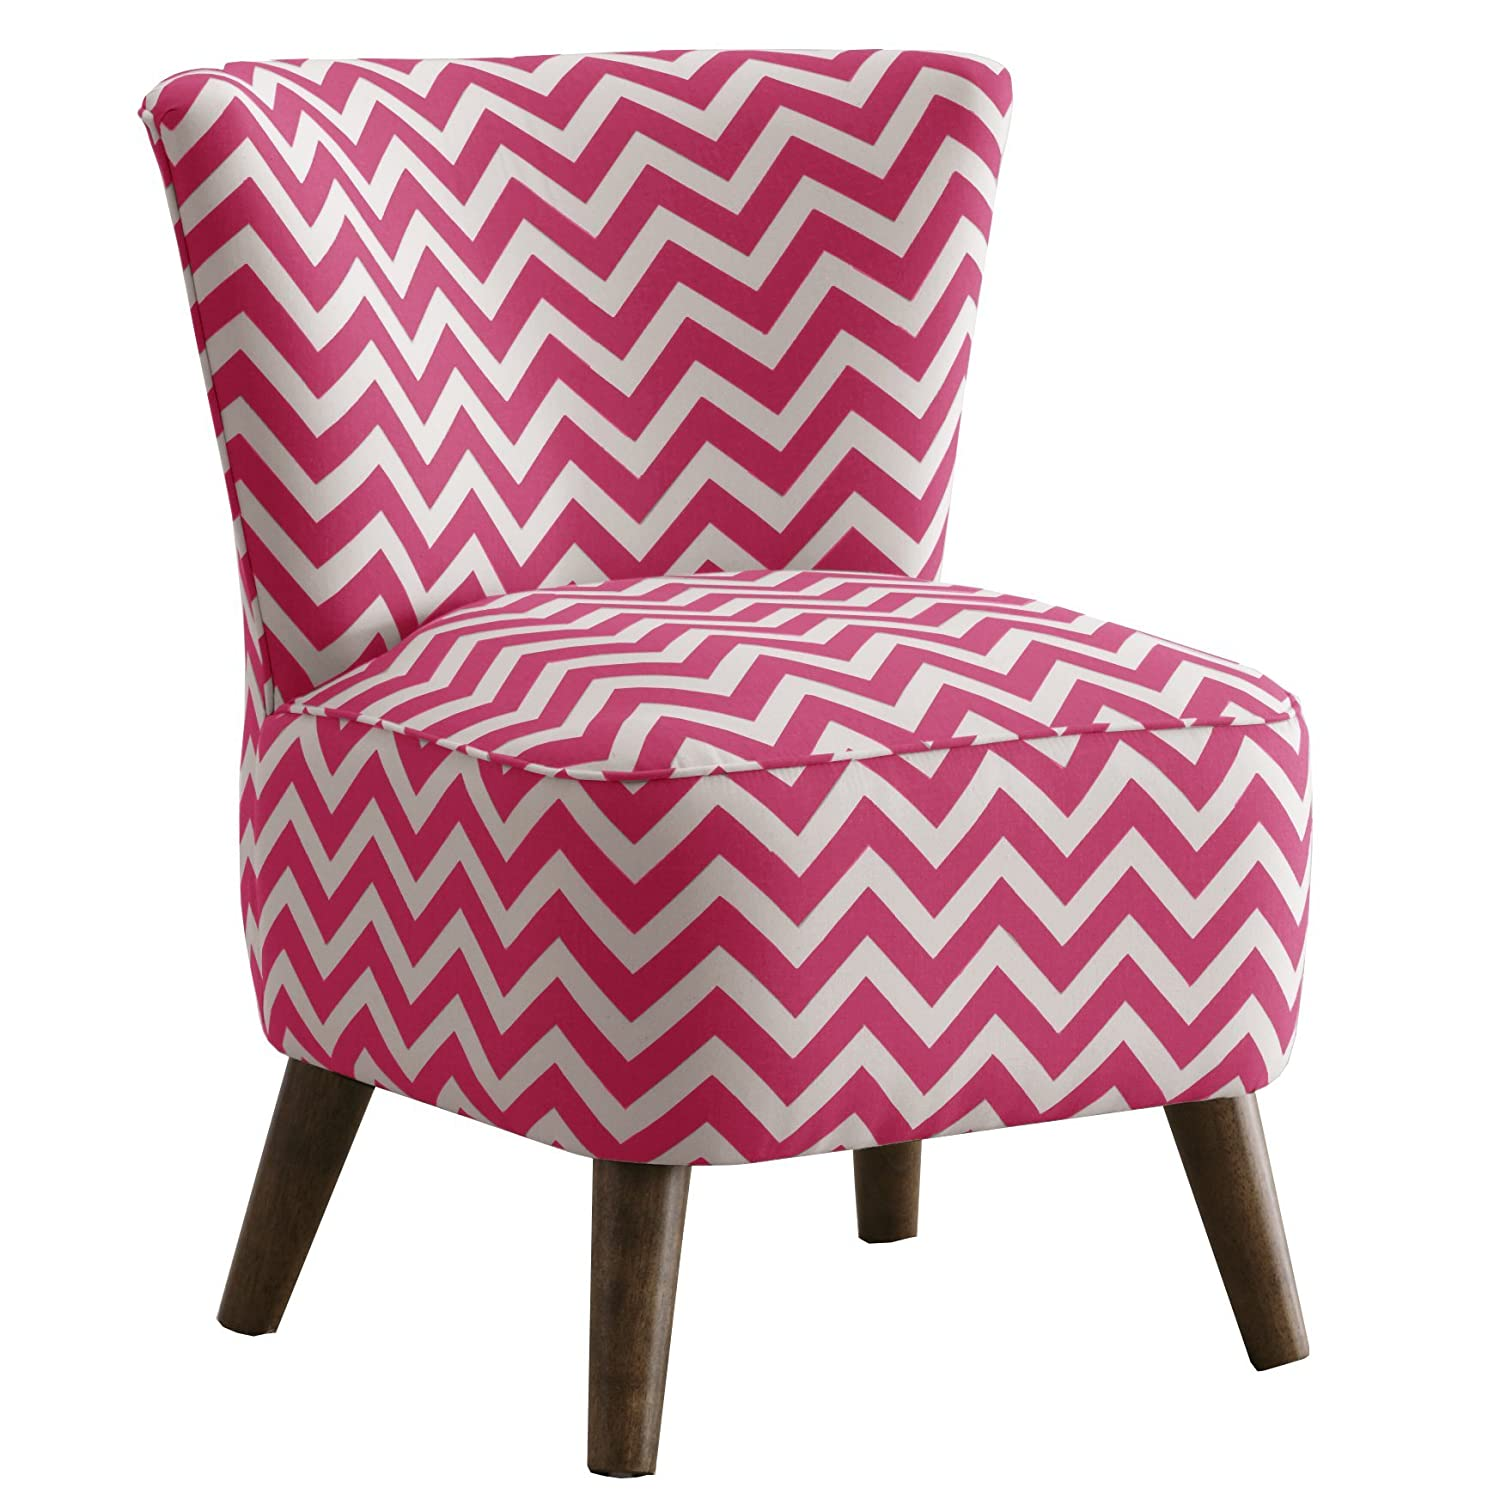 Funky pink chairs for teen girls kardiel egg chair ottoman pink